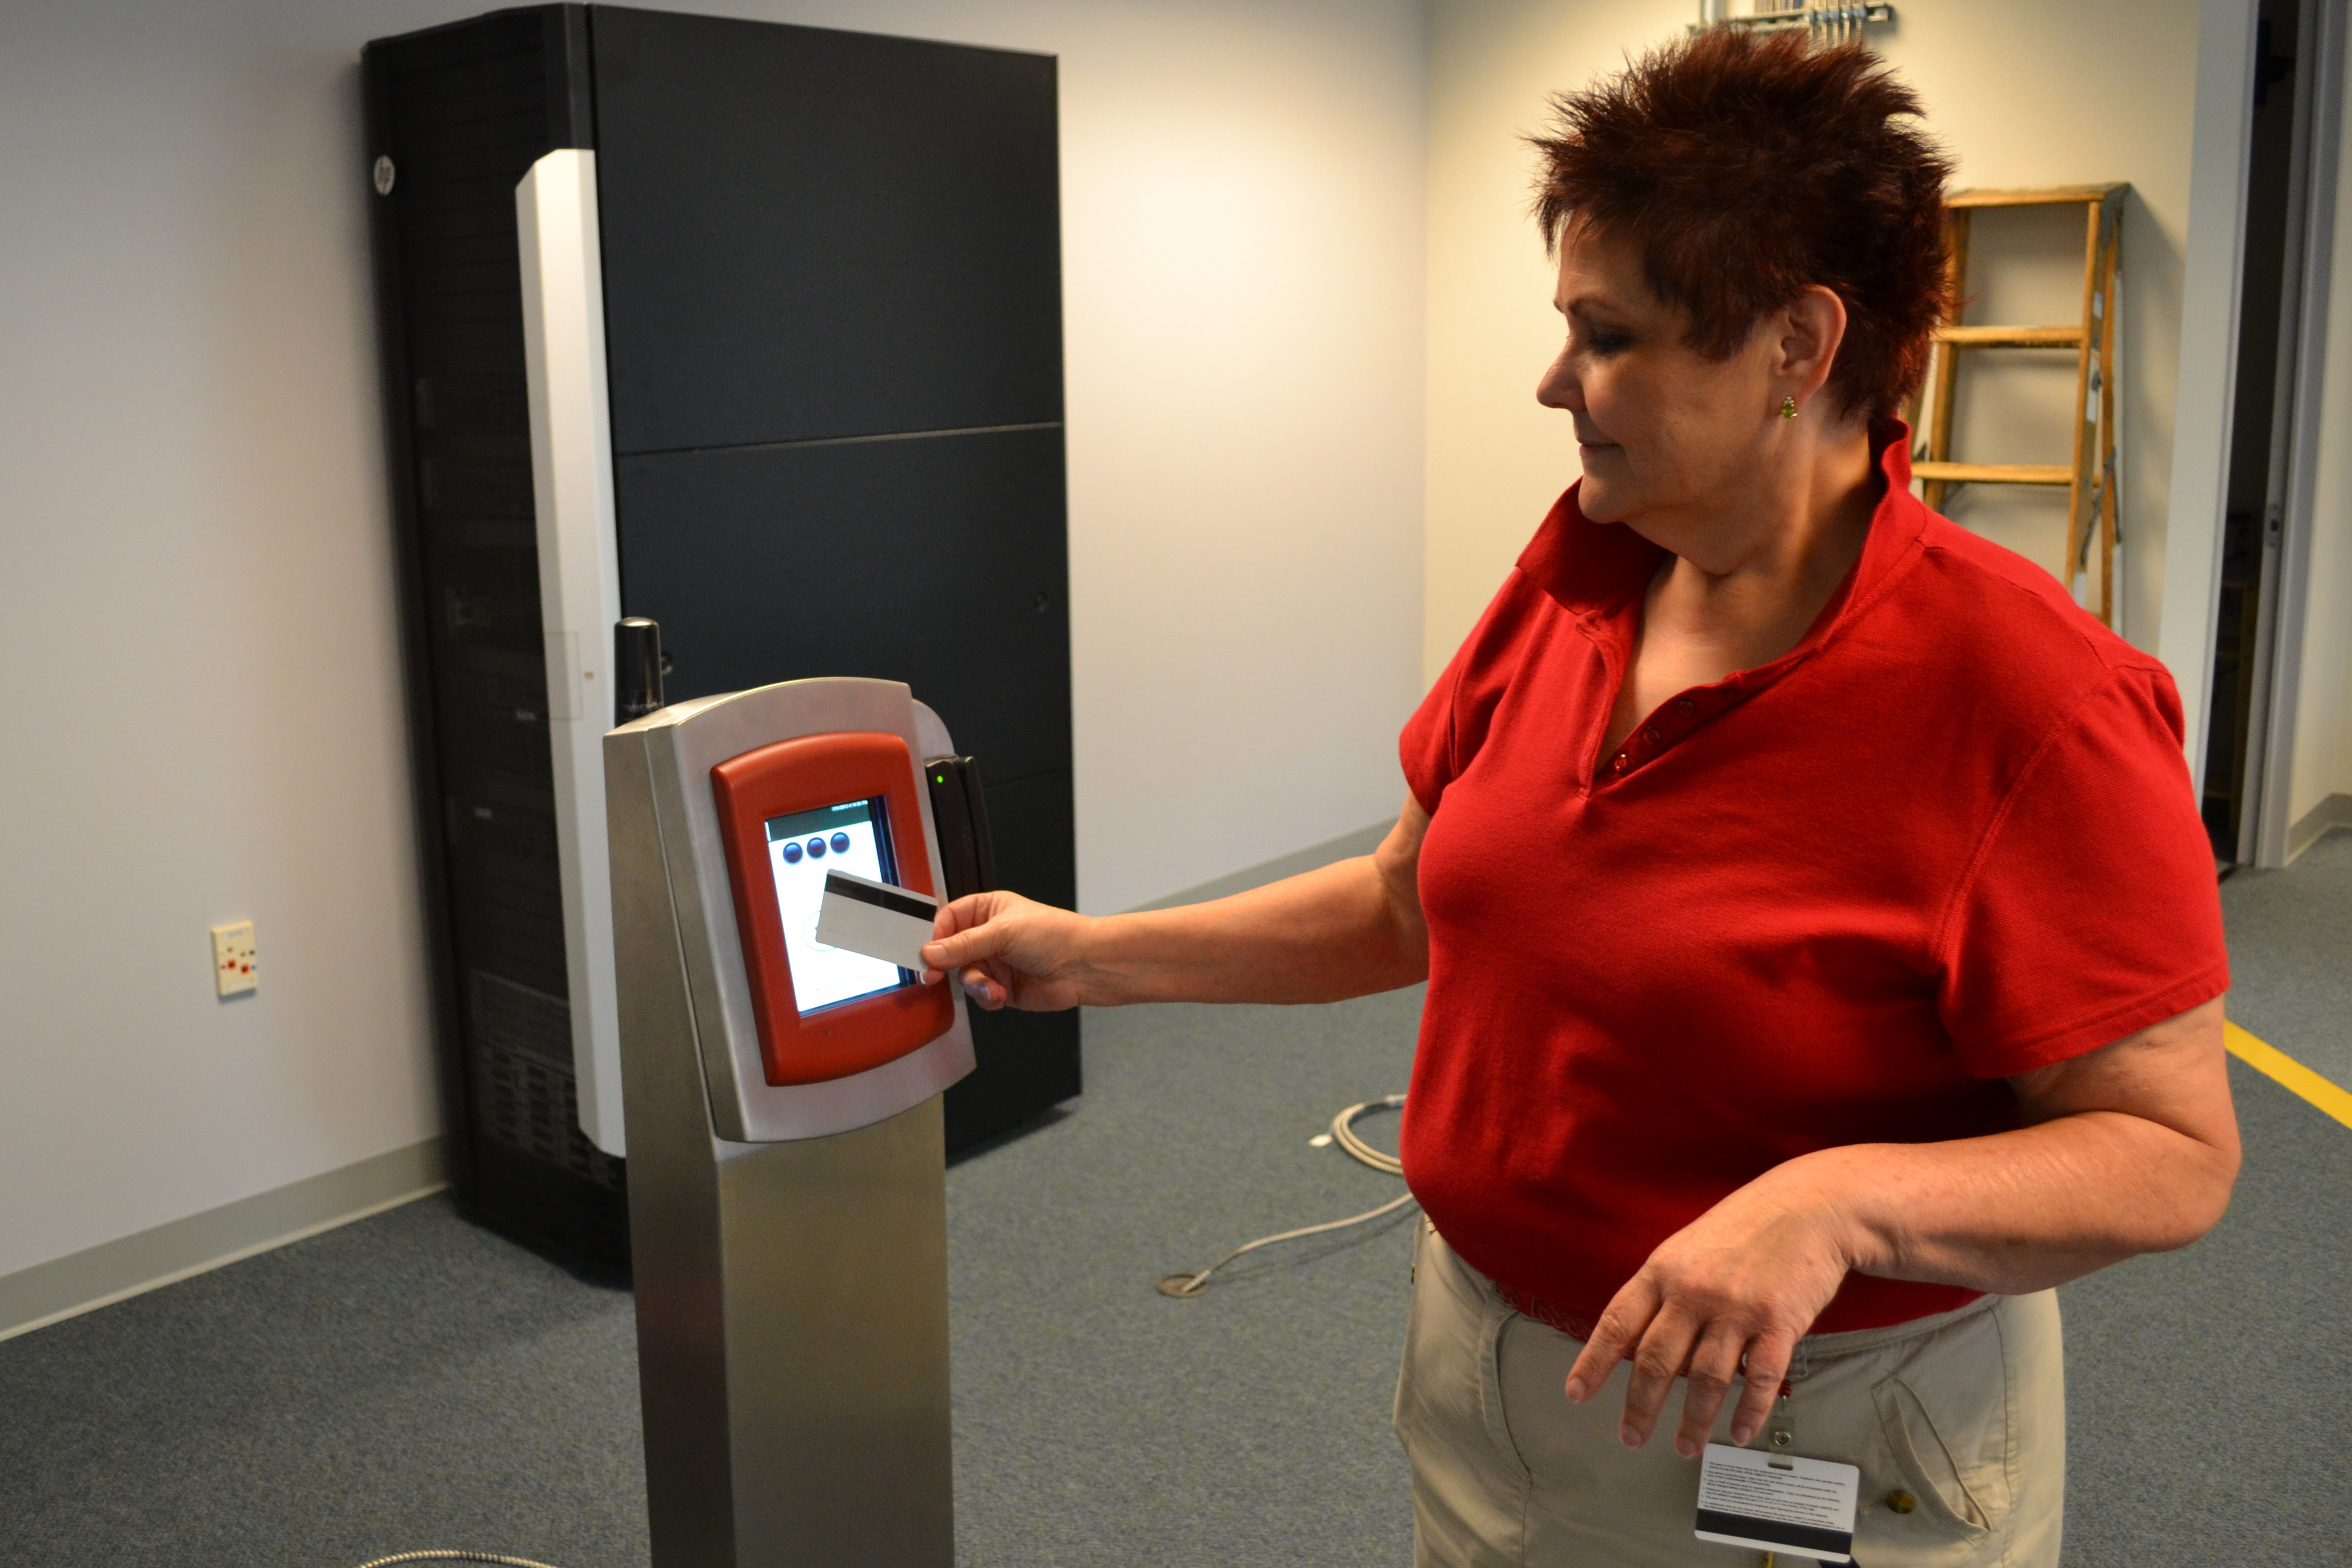 Leslie Hickman, deputy chief officer of NPT Integration, demonstrated how passengers will tap card readers at the outlying regional rail stations